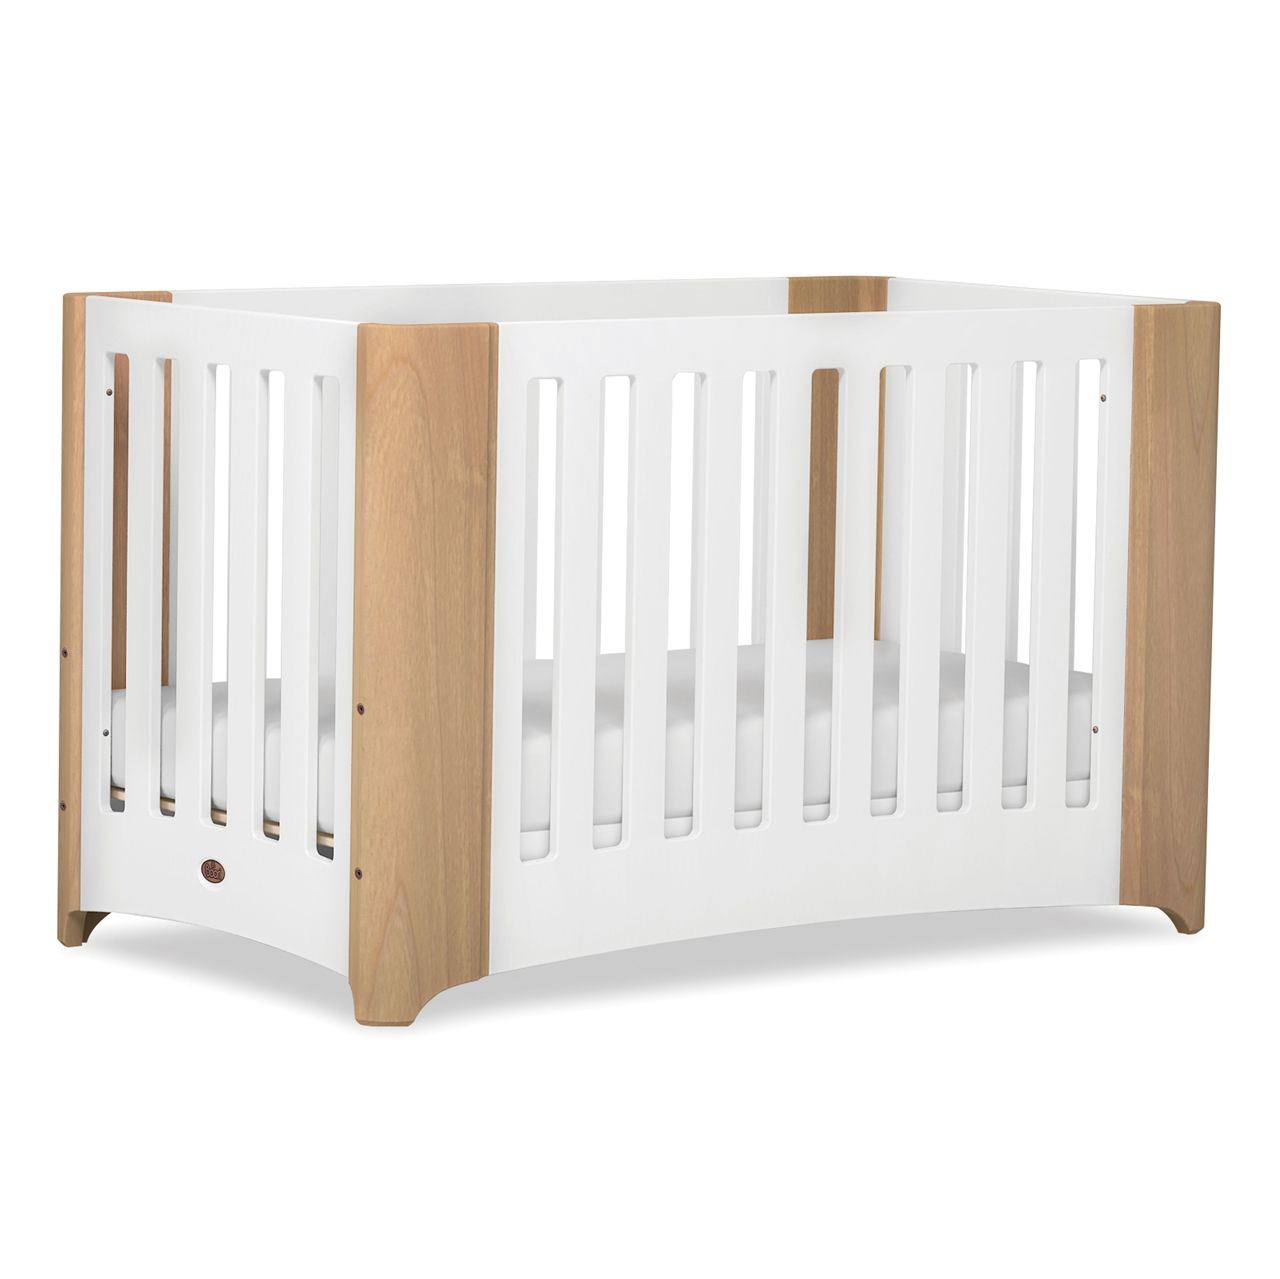 The Boori Dawn Expandable Cot Will Convert From Cot To A Toddler Bed And A  Single Bed. It Is The Perfect All In One Cot. Suitability: Birth To  Approximately ...